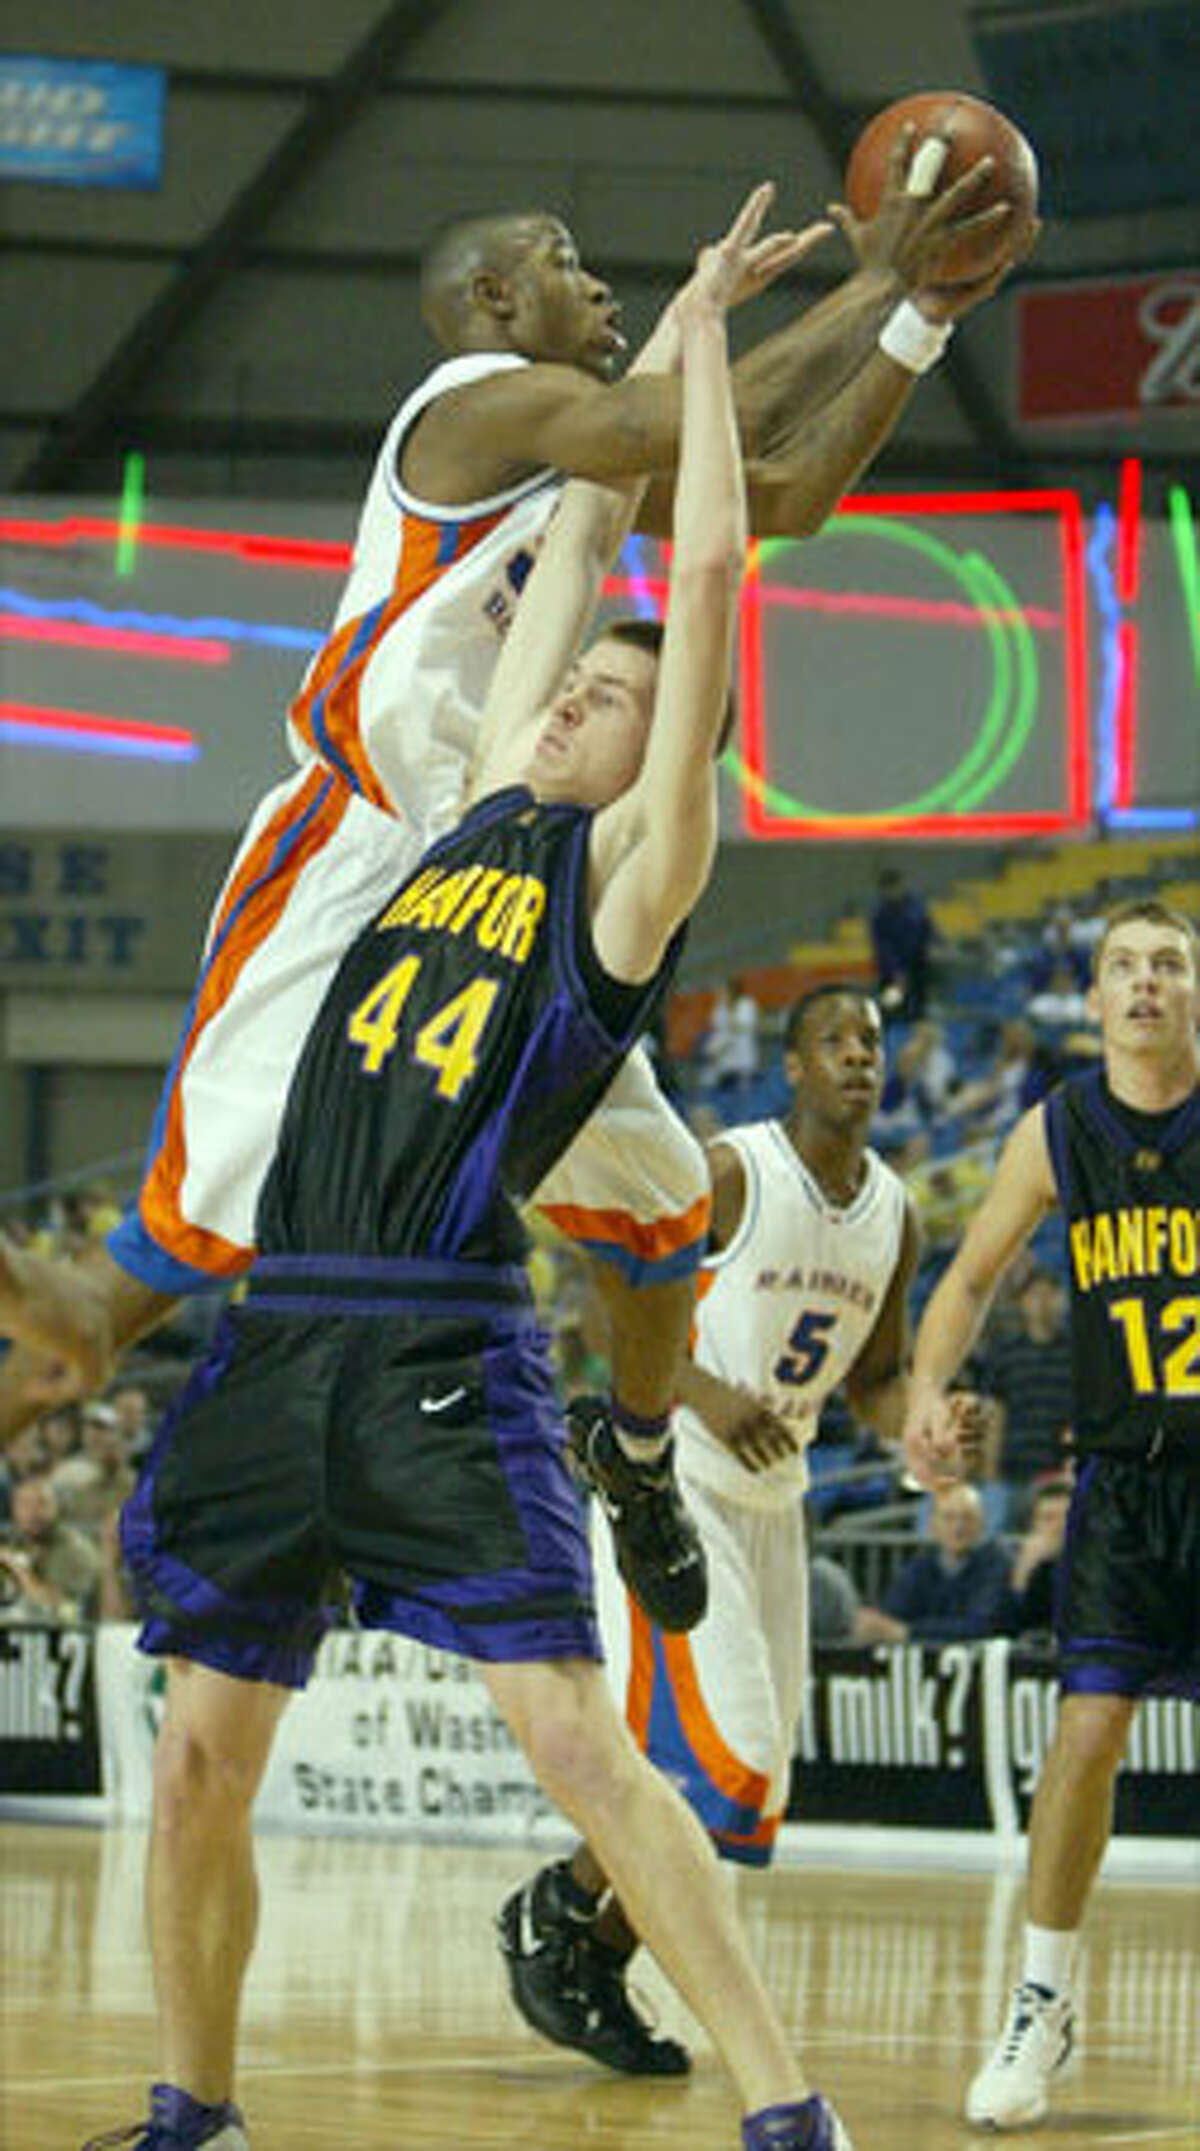 Rainier Beach star Terrence Williams goes up and over Hanford's Steve Severin. Williams, who suffered a bloody nose after colliding with a Hanford player, scored 11 points.